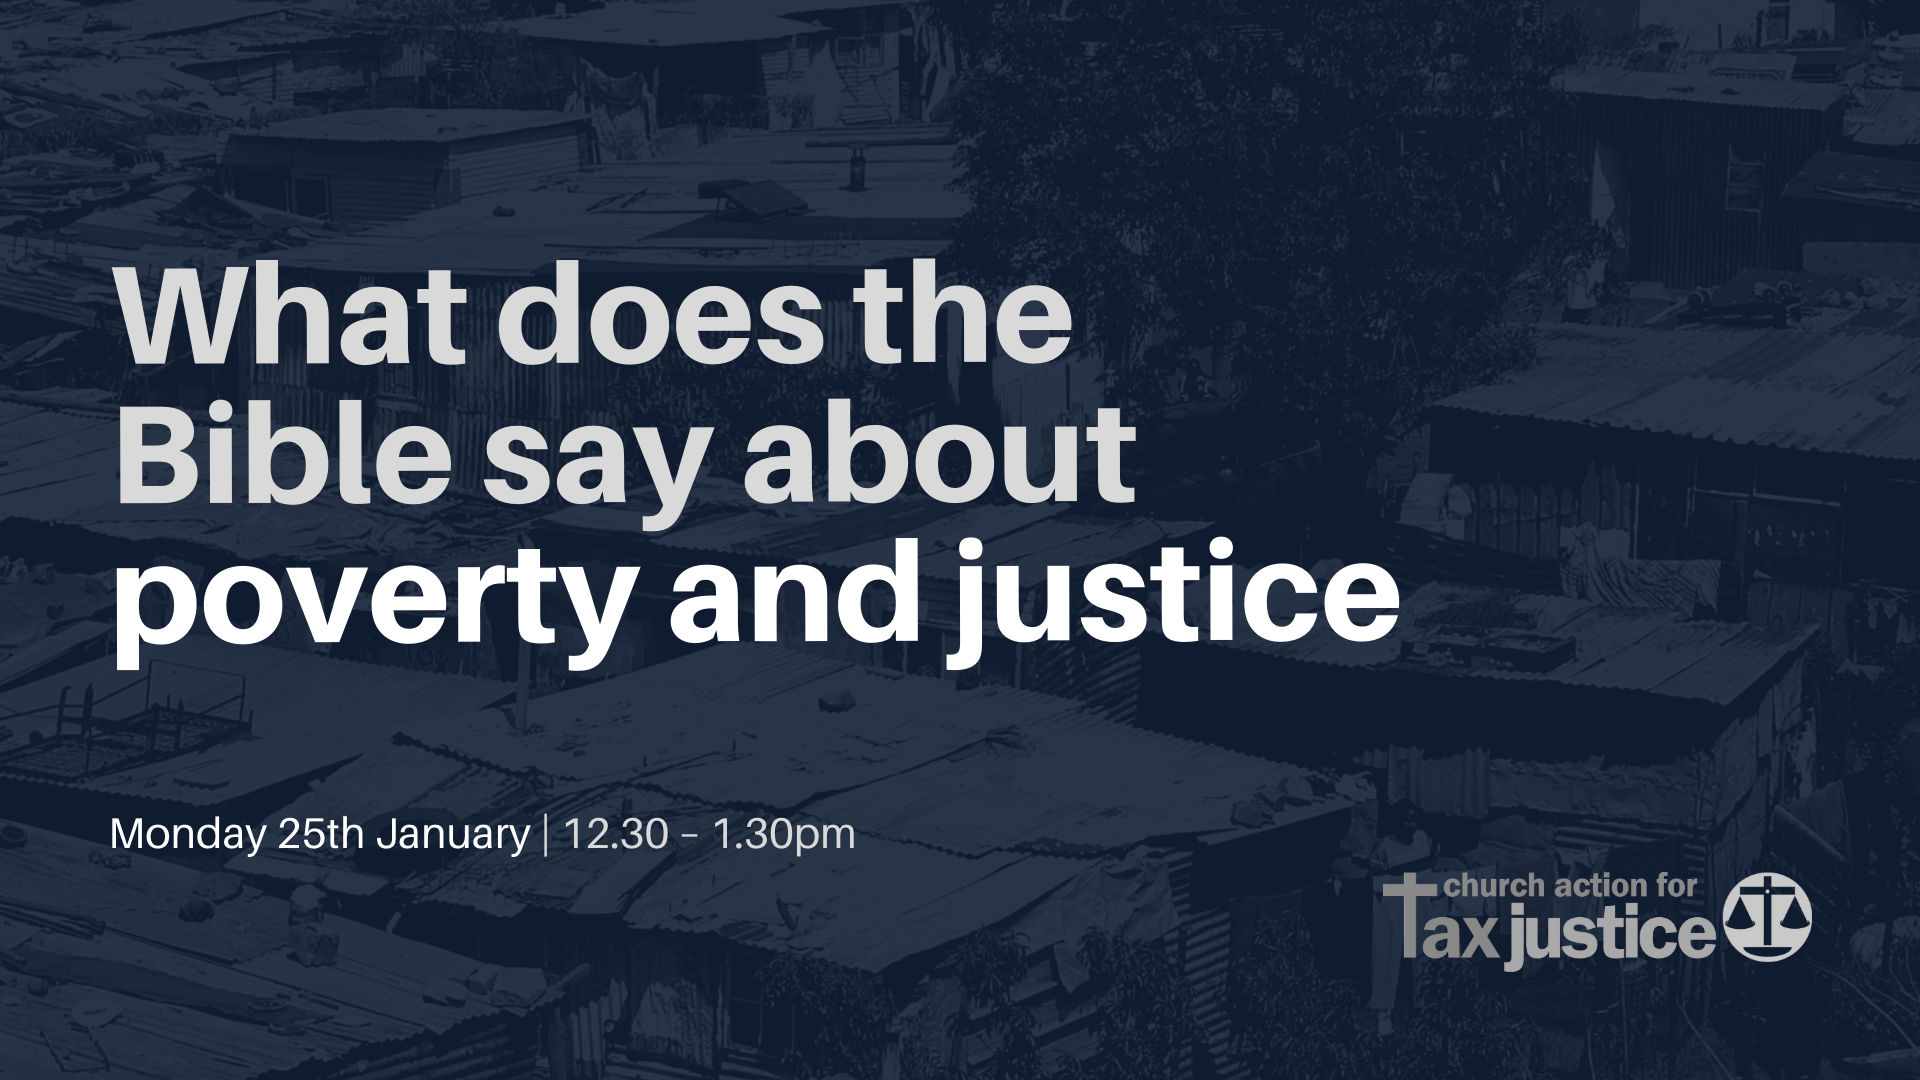 Bible Study | What does the Bible say about poverty and justice?